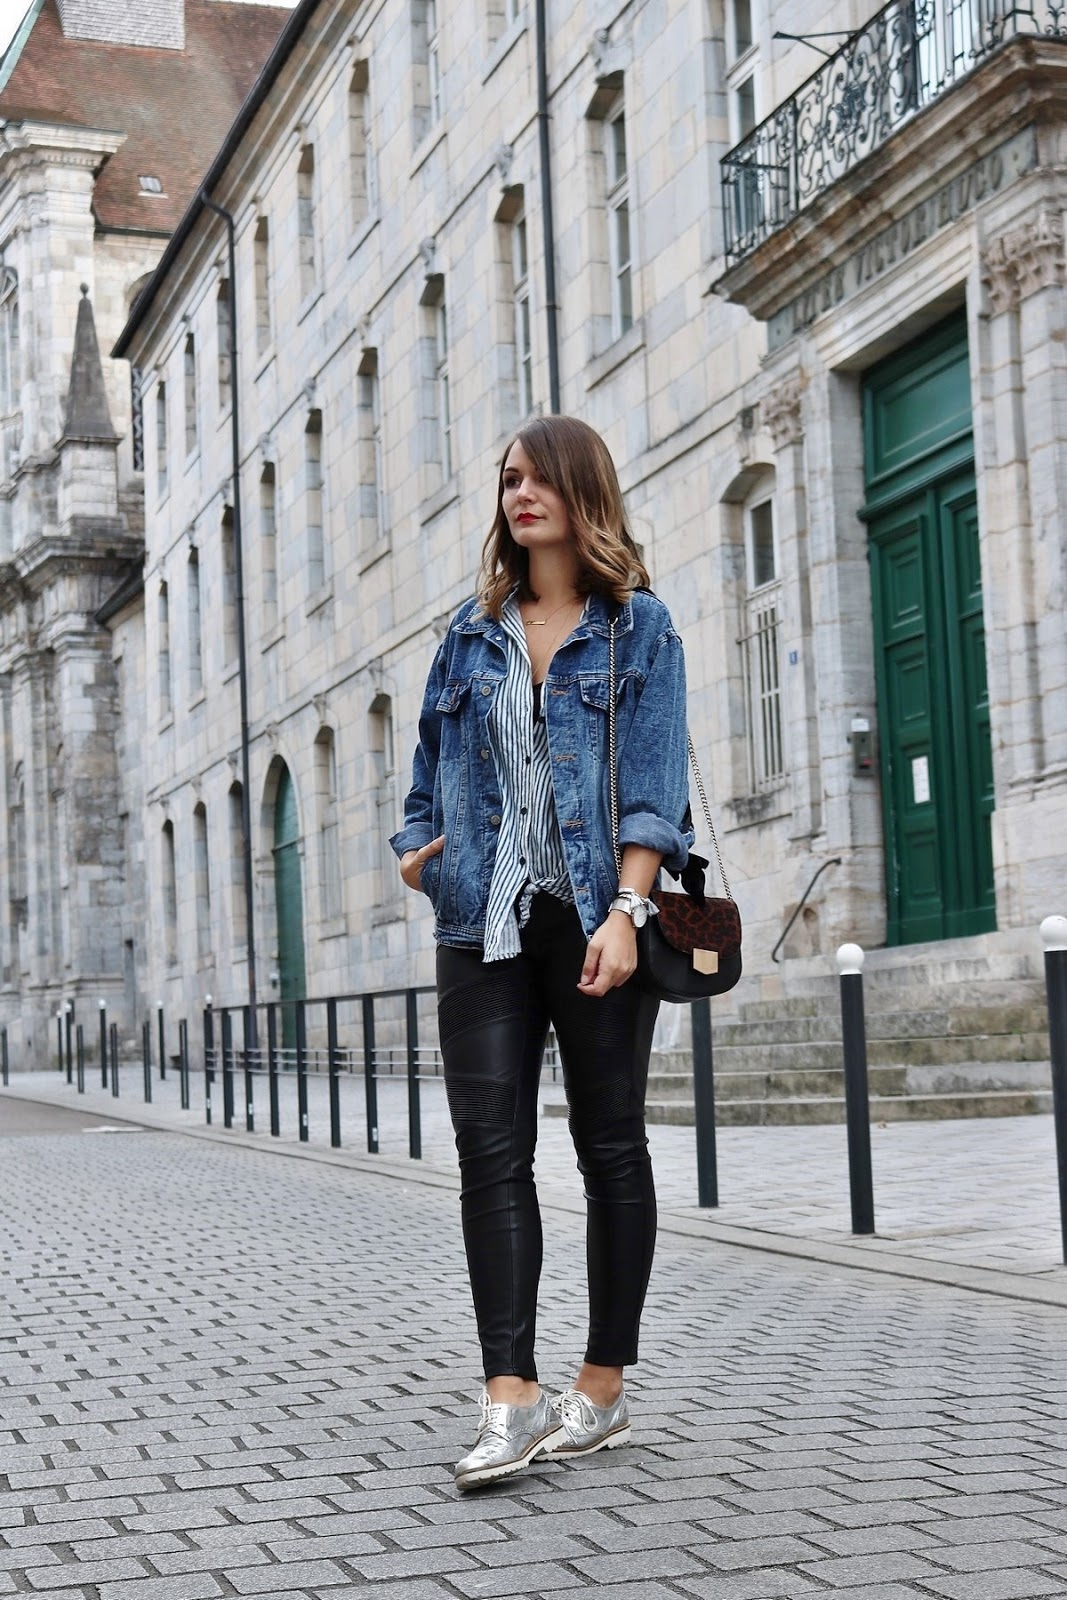 pauline-dress-tenue-look-besancon-veste-denim-lace-up-noir-tregging-chemise-rayee-sac-leo-pied